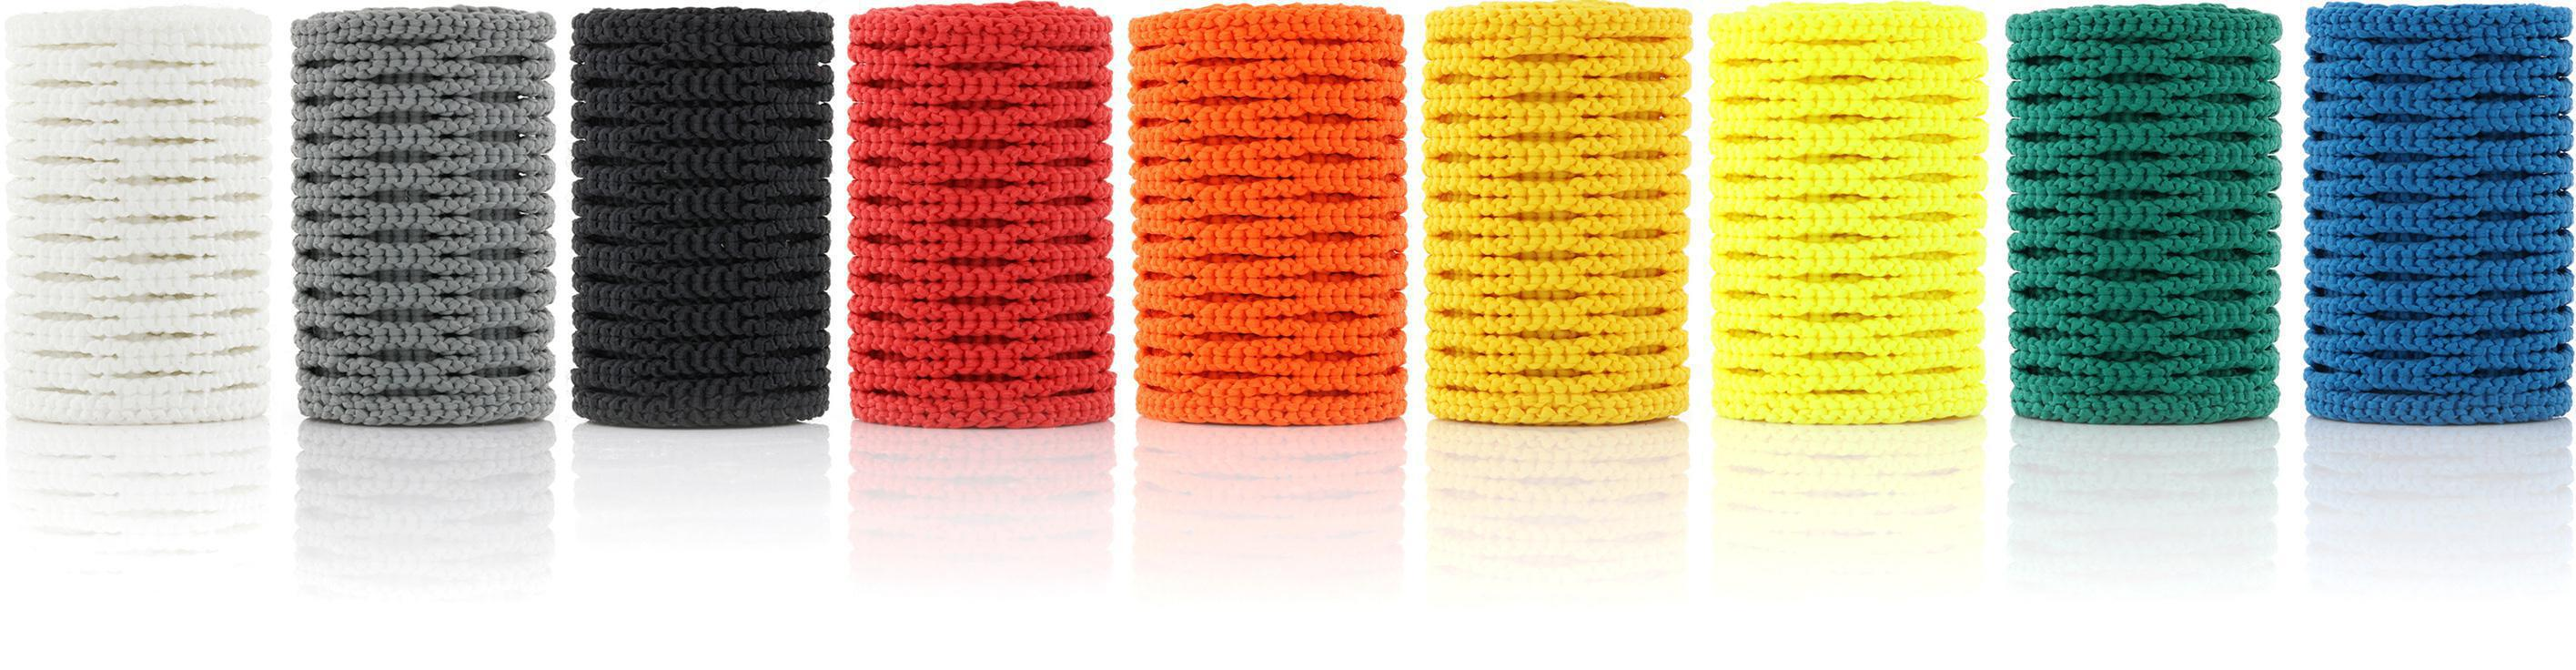 StringKing Type 2 Lacrosse Mesh Colors Category Image